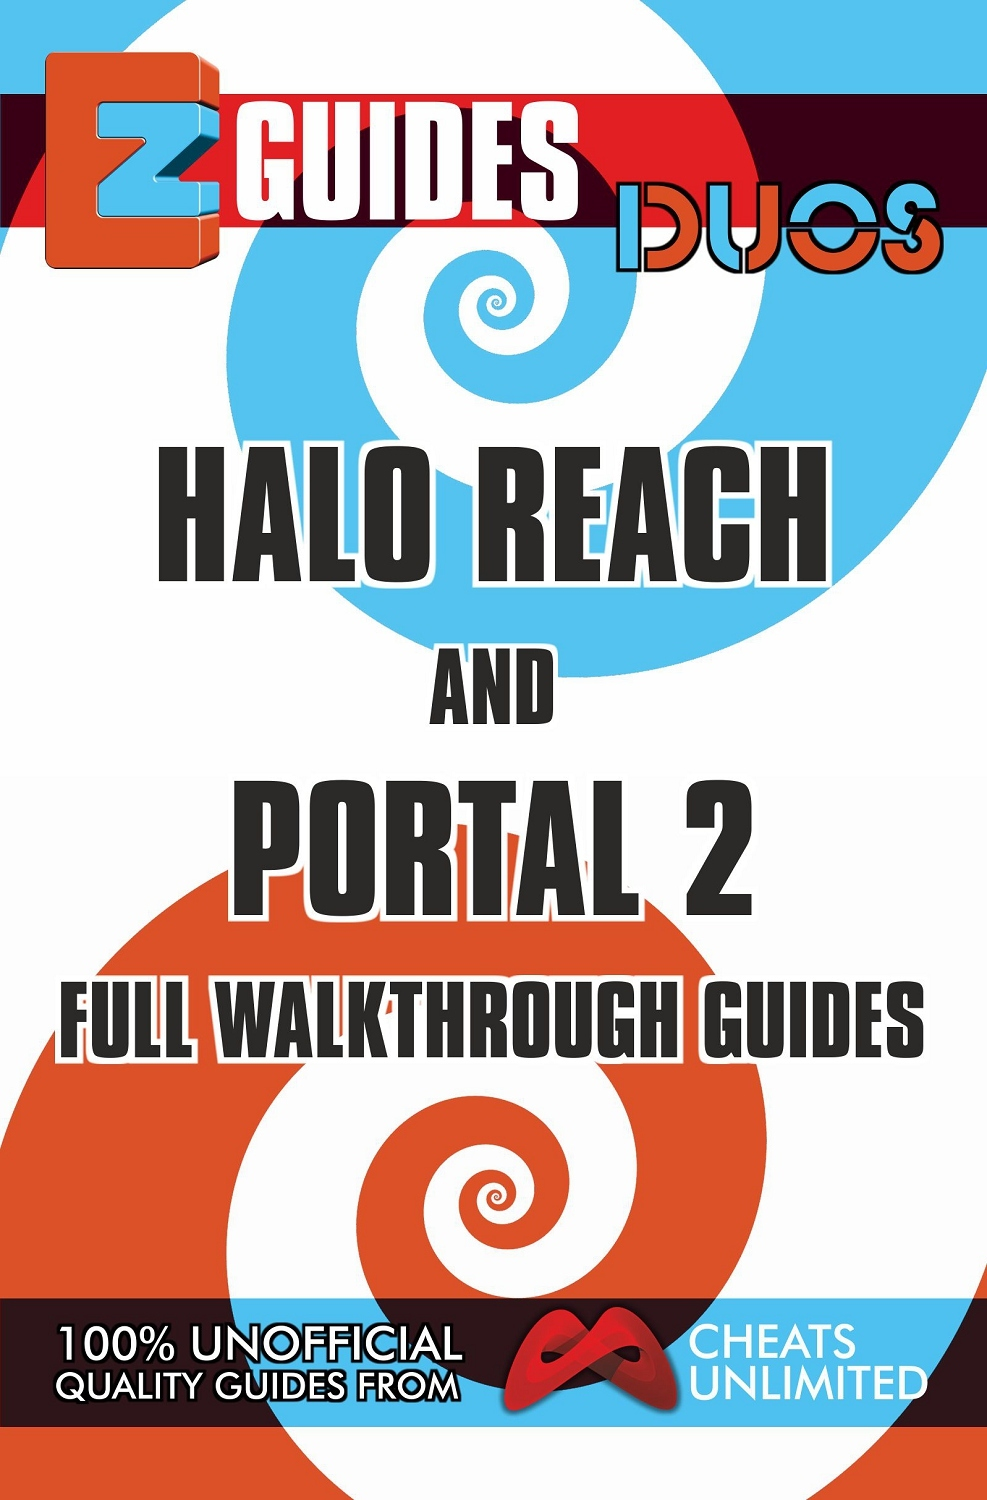 EZ Guides: Duos - HALO Reach and PORTAL 2 Full Walkthrough Guides